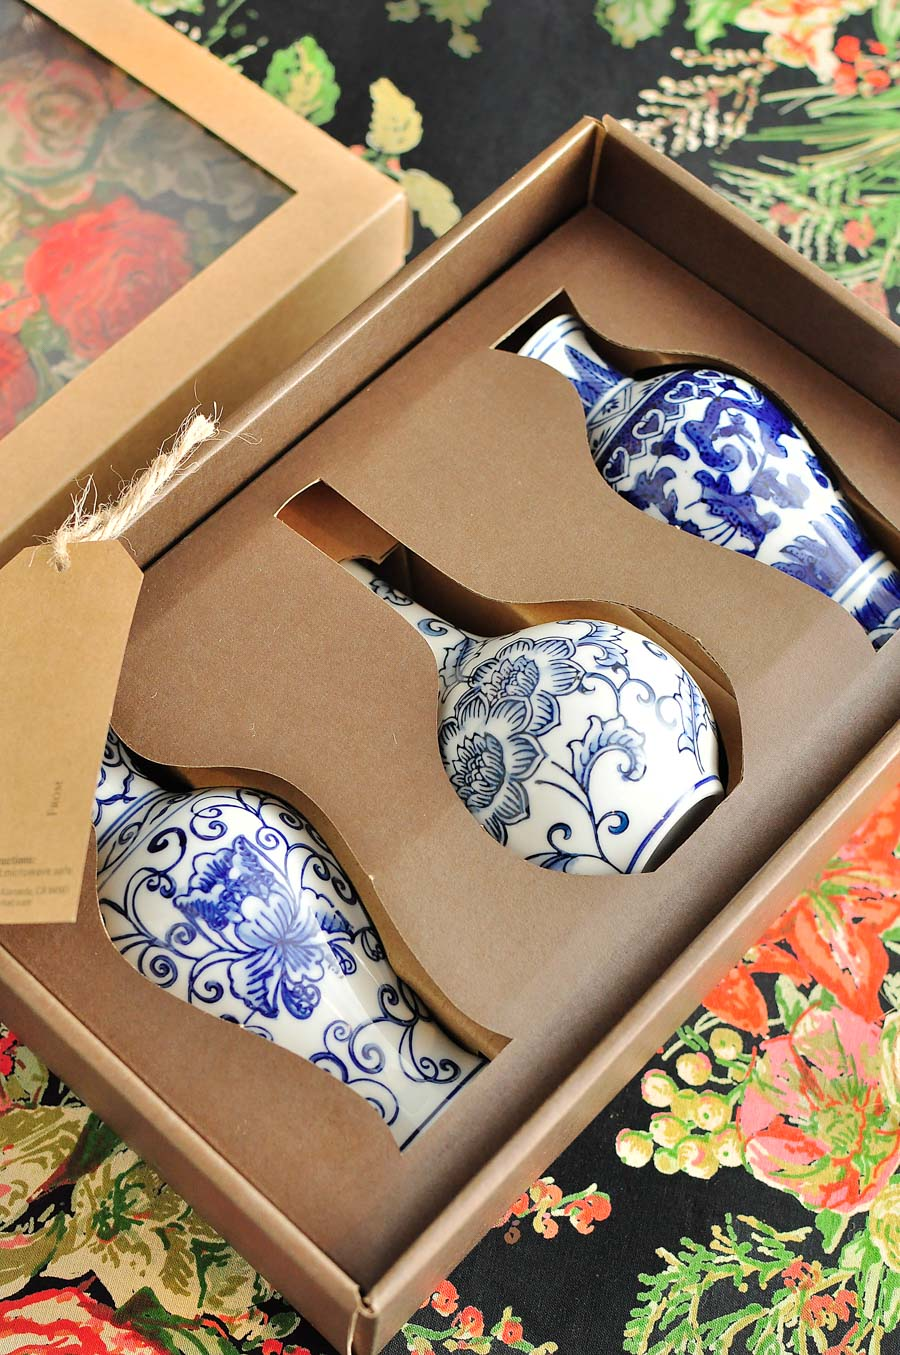 Mini blue and white ginger jar vases  ready for gift giving!